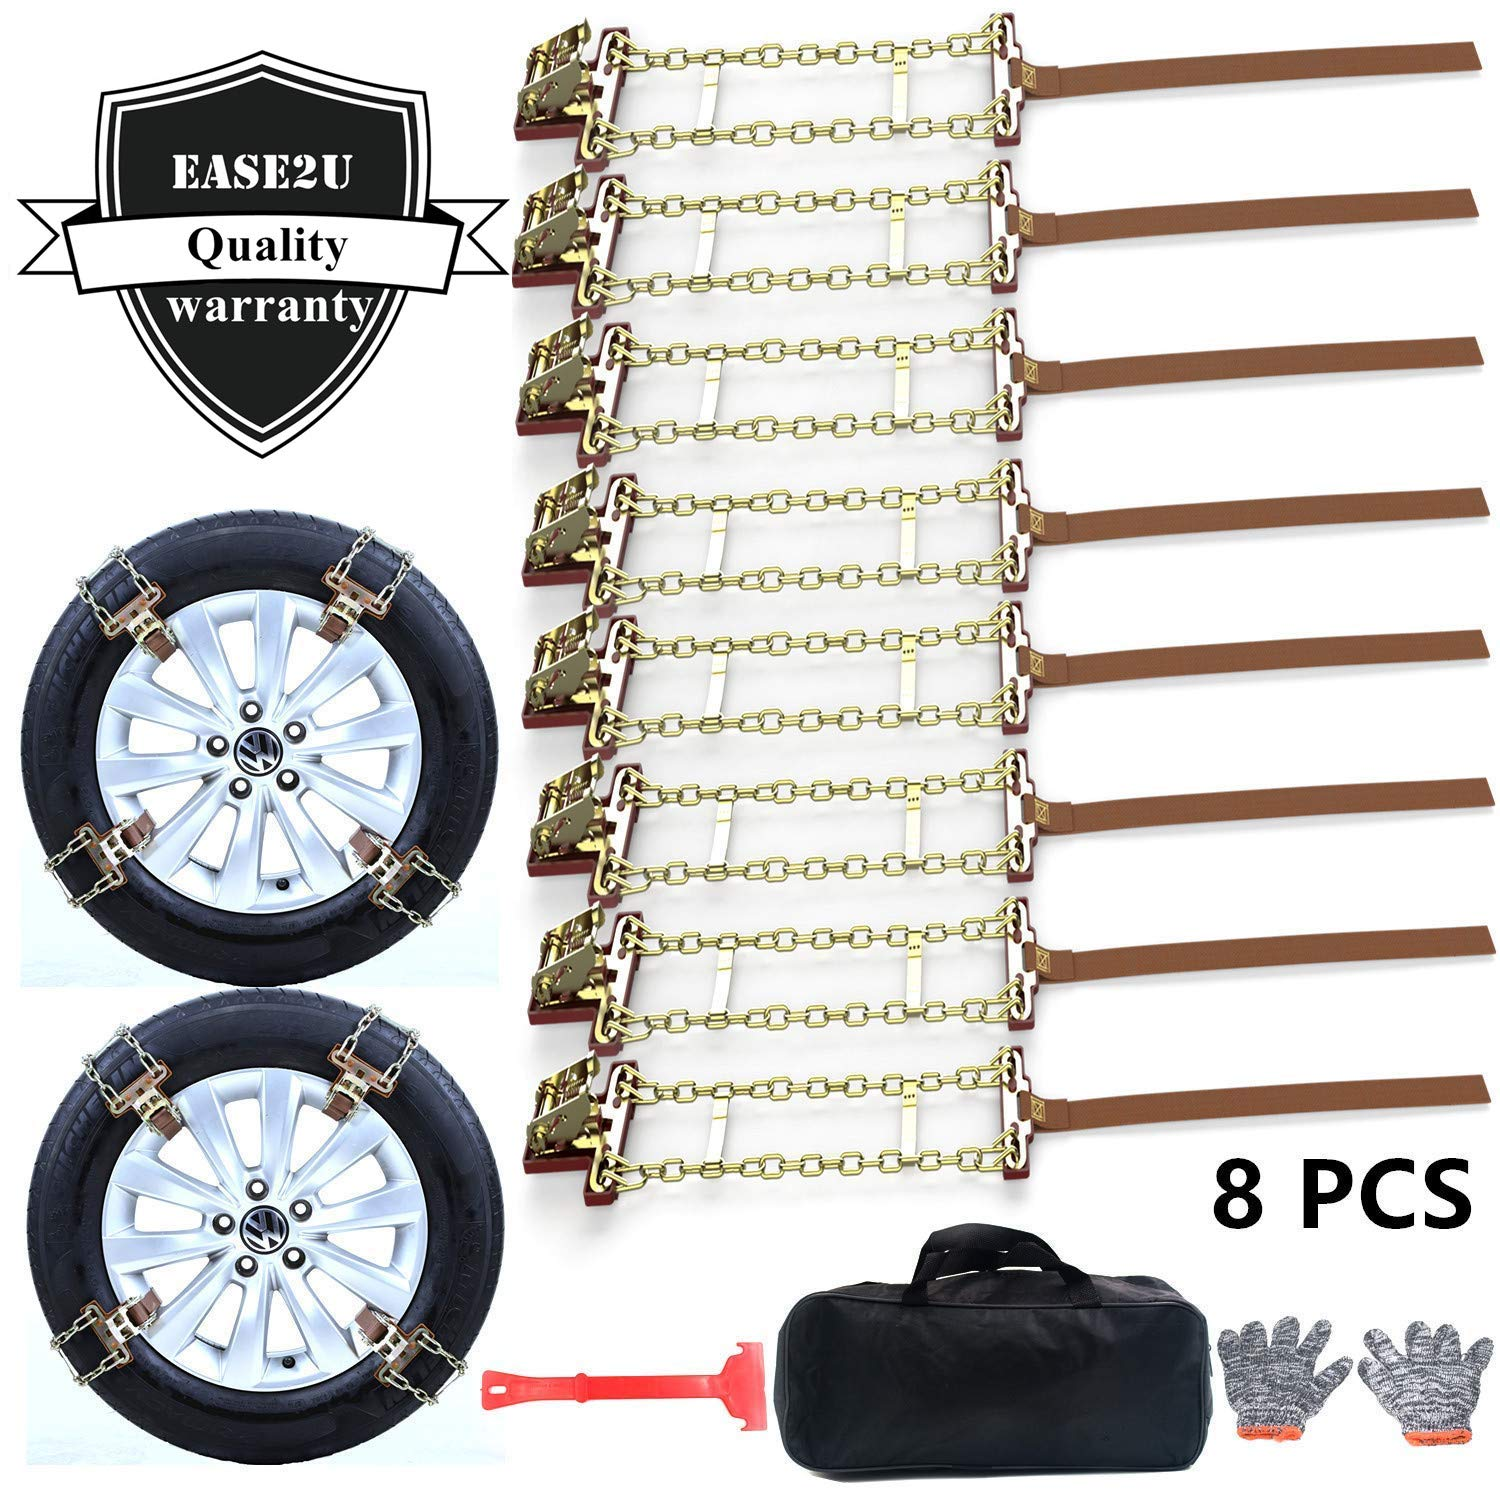 Ease2U Tire Chains, Snow Chains for suvs, Cars, Sedan, Family Automobiles,Trucks with Update Adjustable Lock for Ice, Snow,Mud,Sand,Applicable Tire Width 205-275mm/8.07-10.8in(8 Pack) Ease2U Direct EUTC2813